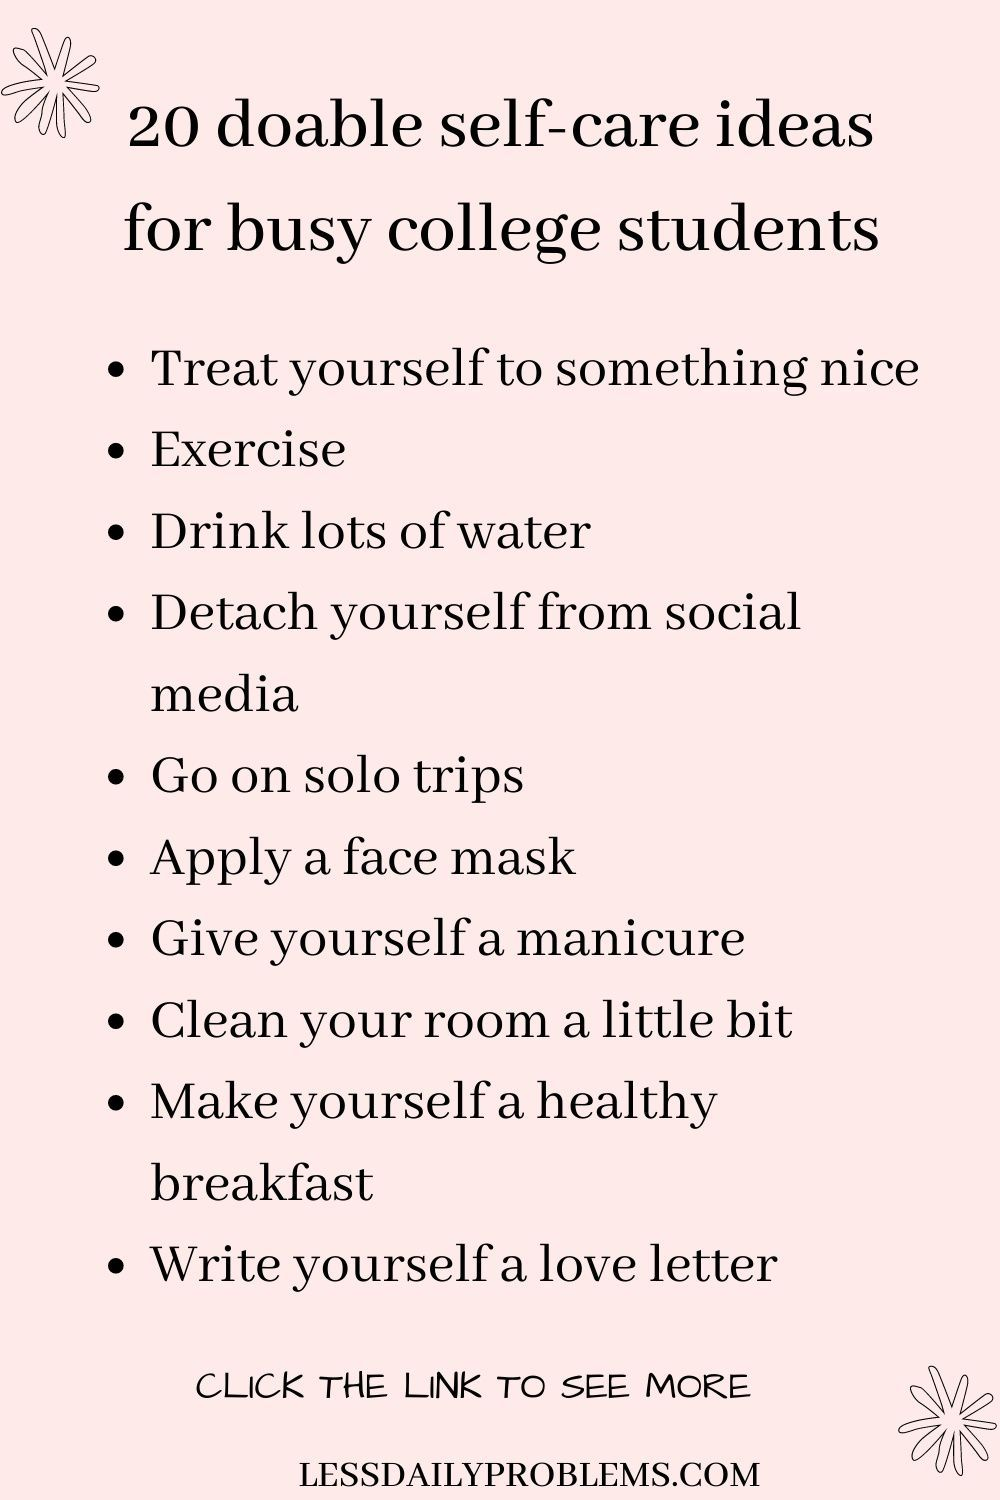 20 Self-care ideas for college students